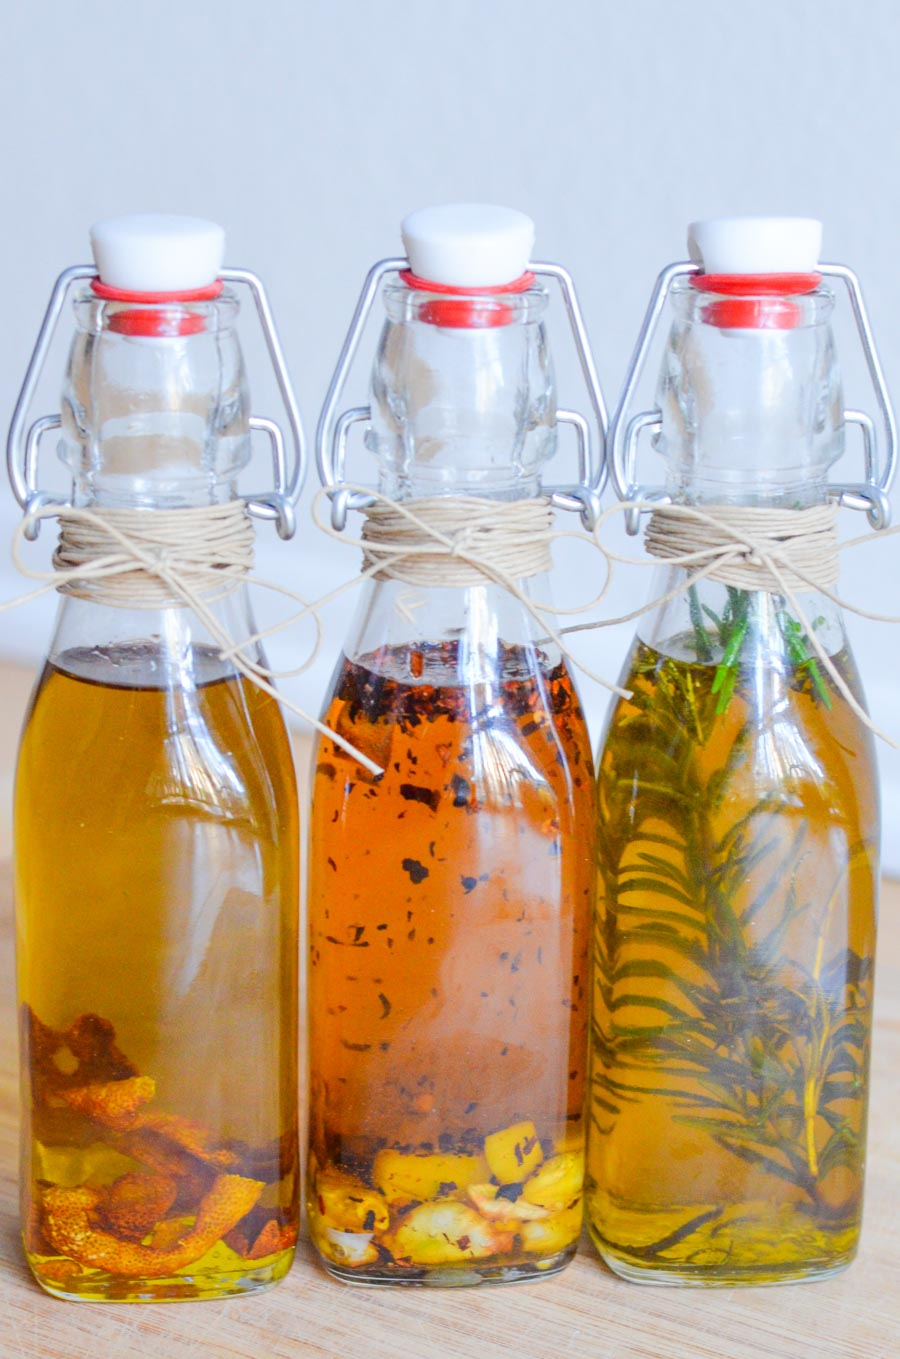 Infused Oils and Spices - The first three oils are made ...  Flavored Oils